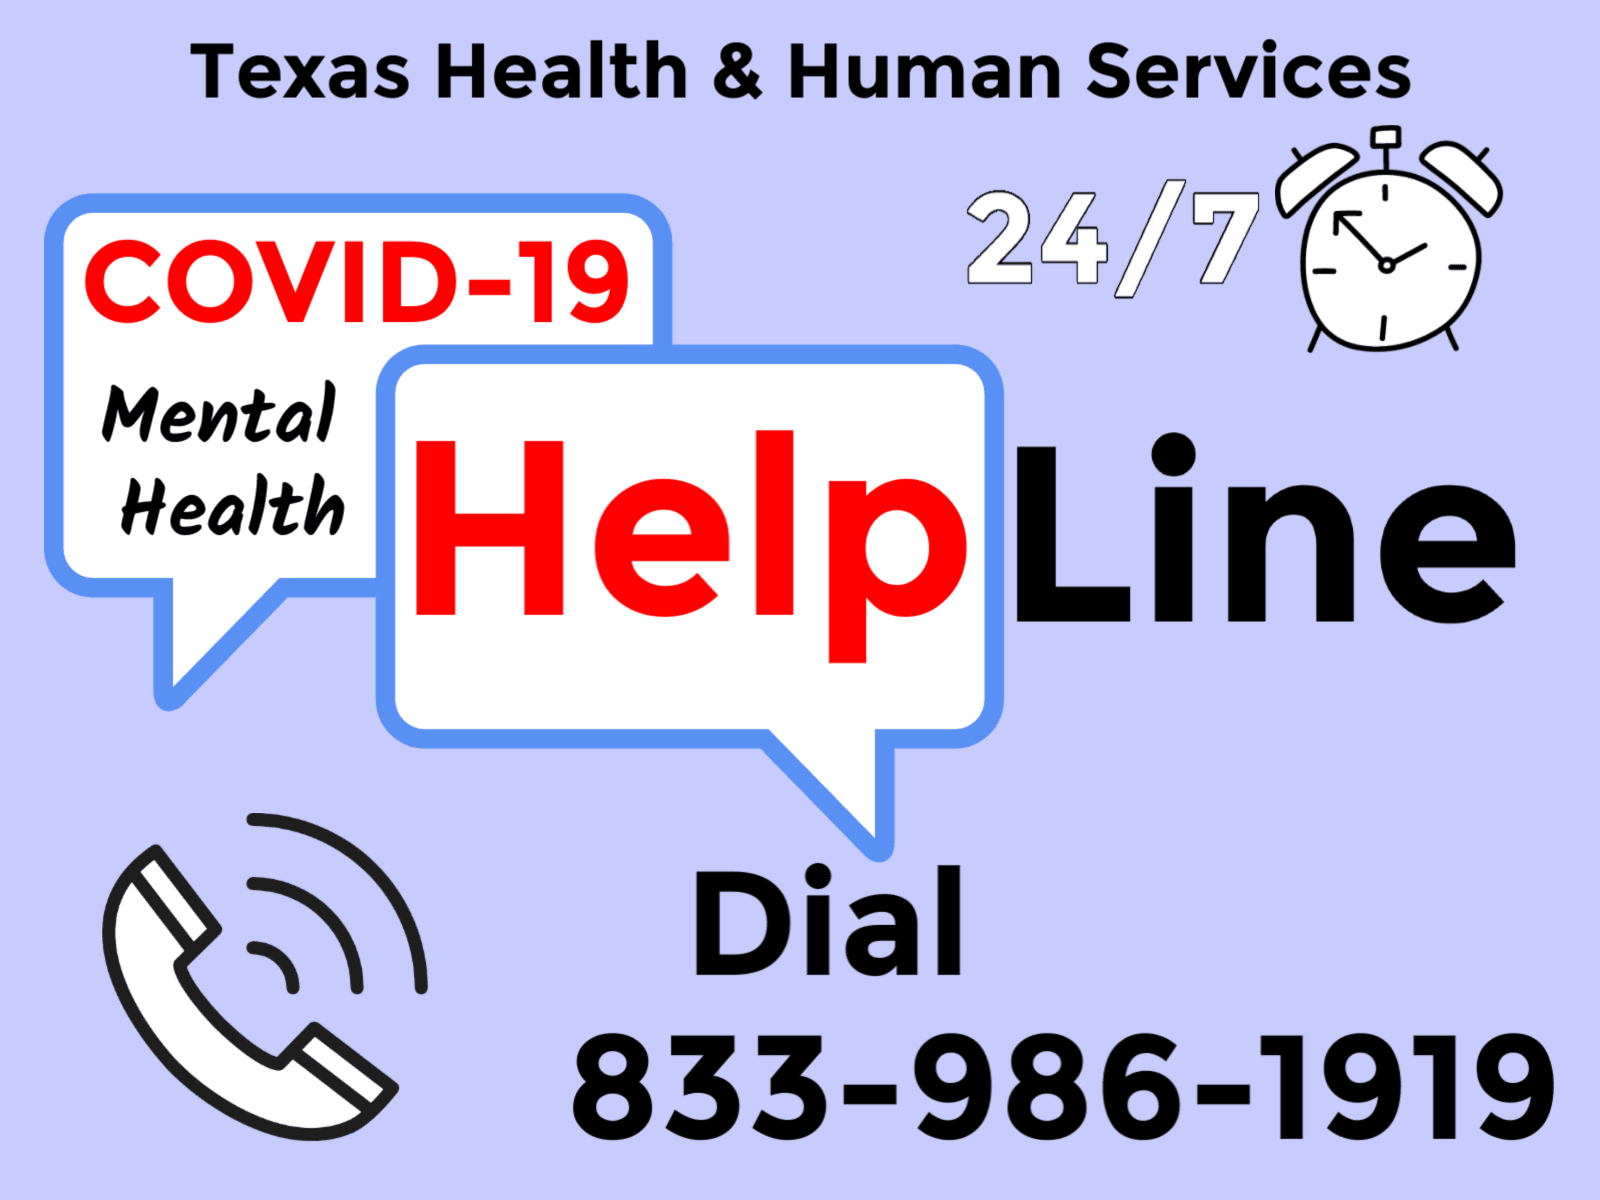 COVID-19 Mental Health Hotline